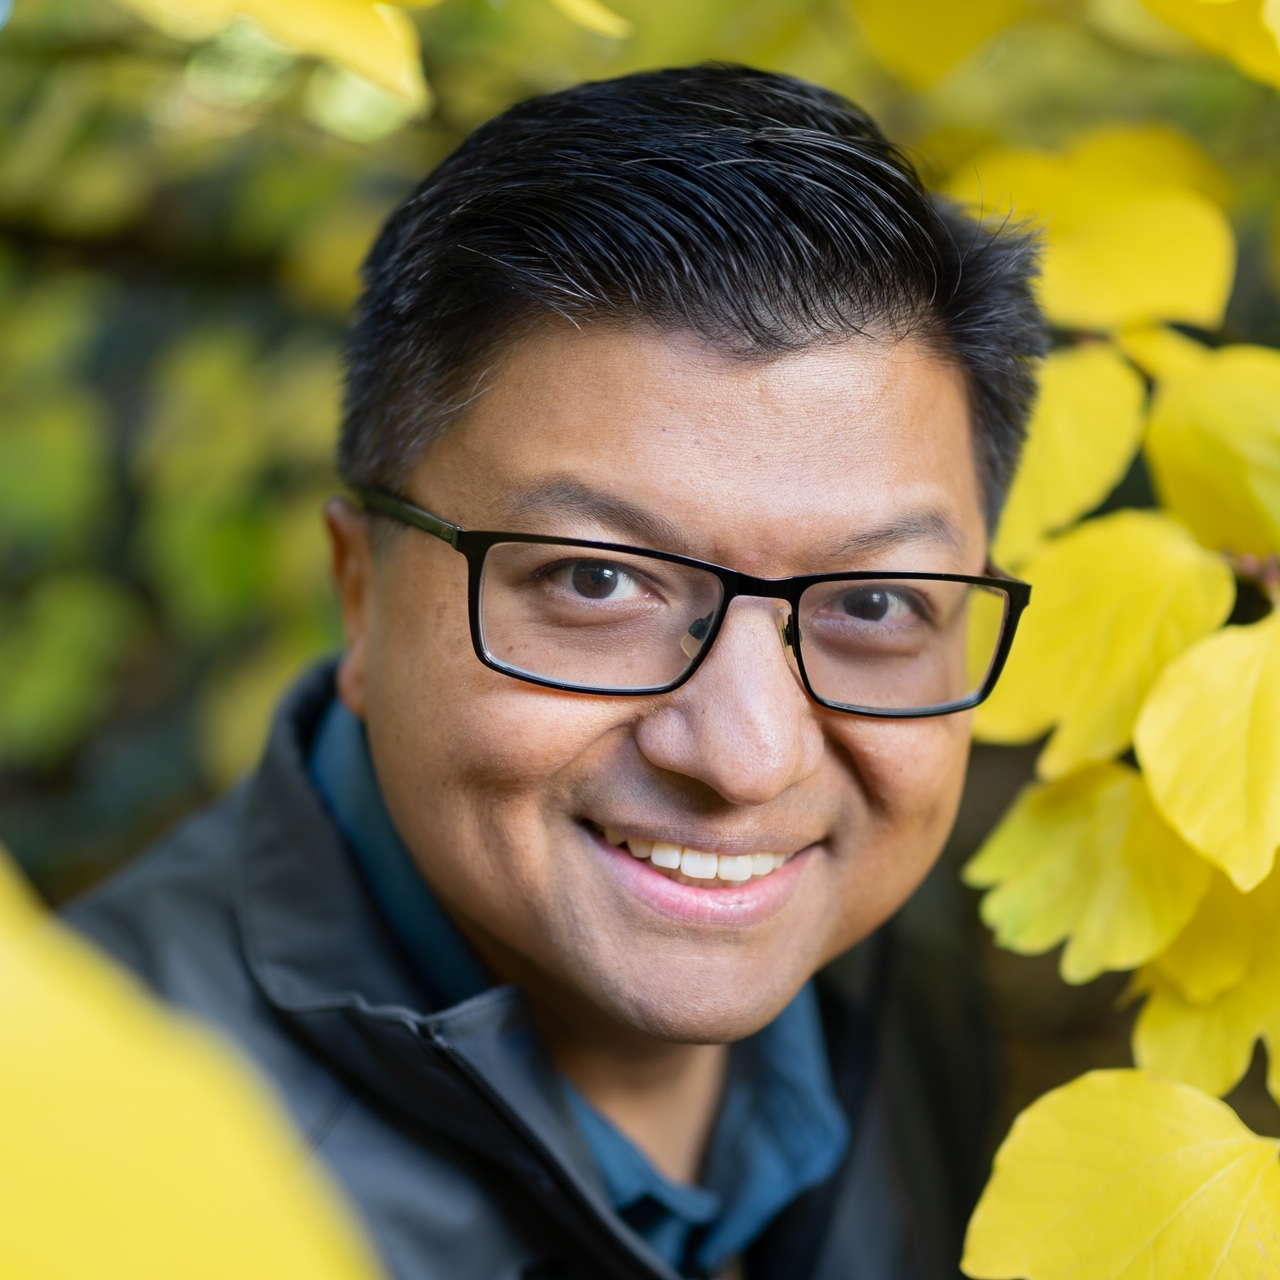 Landscape photographer and Sony Alpha Collective Member, Mahesh Thapa